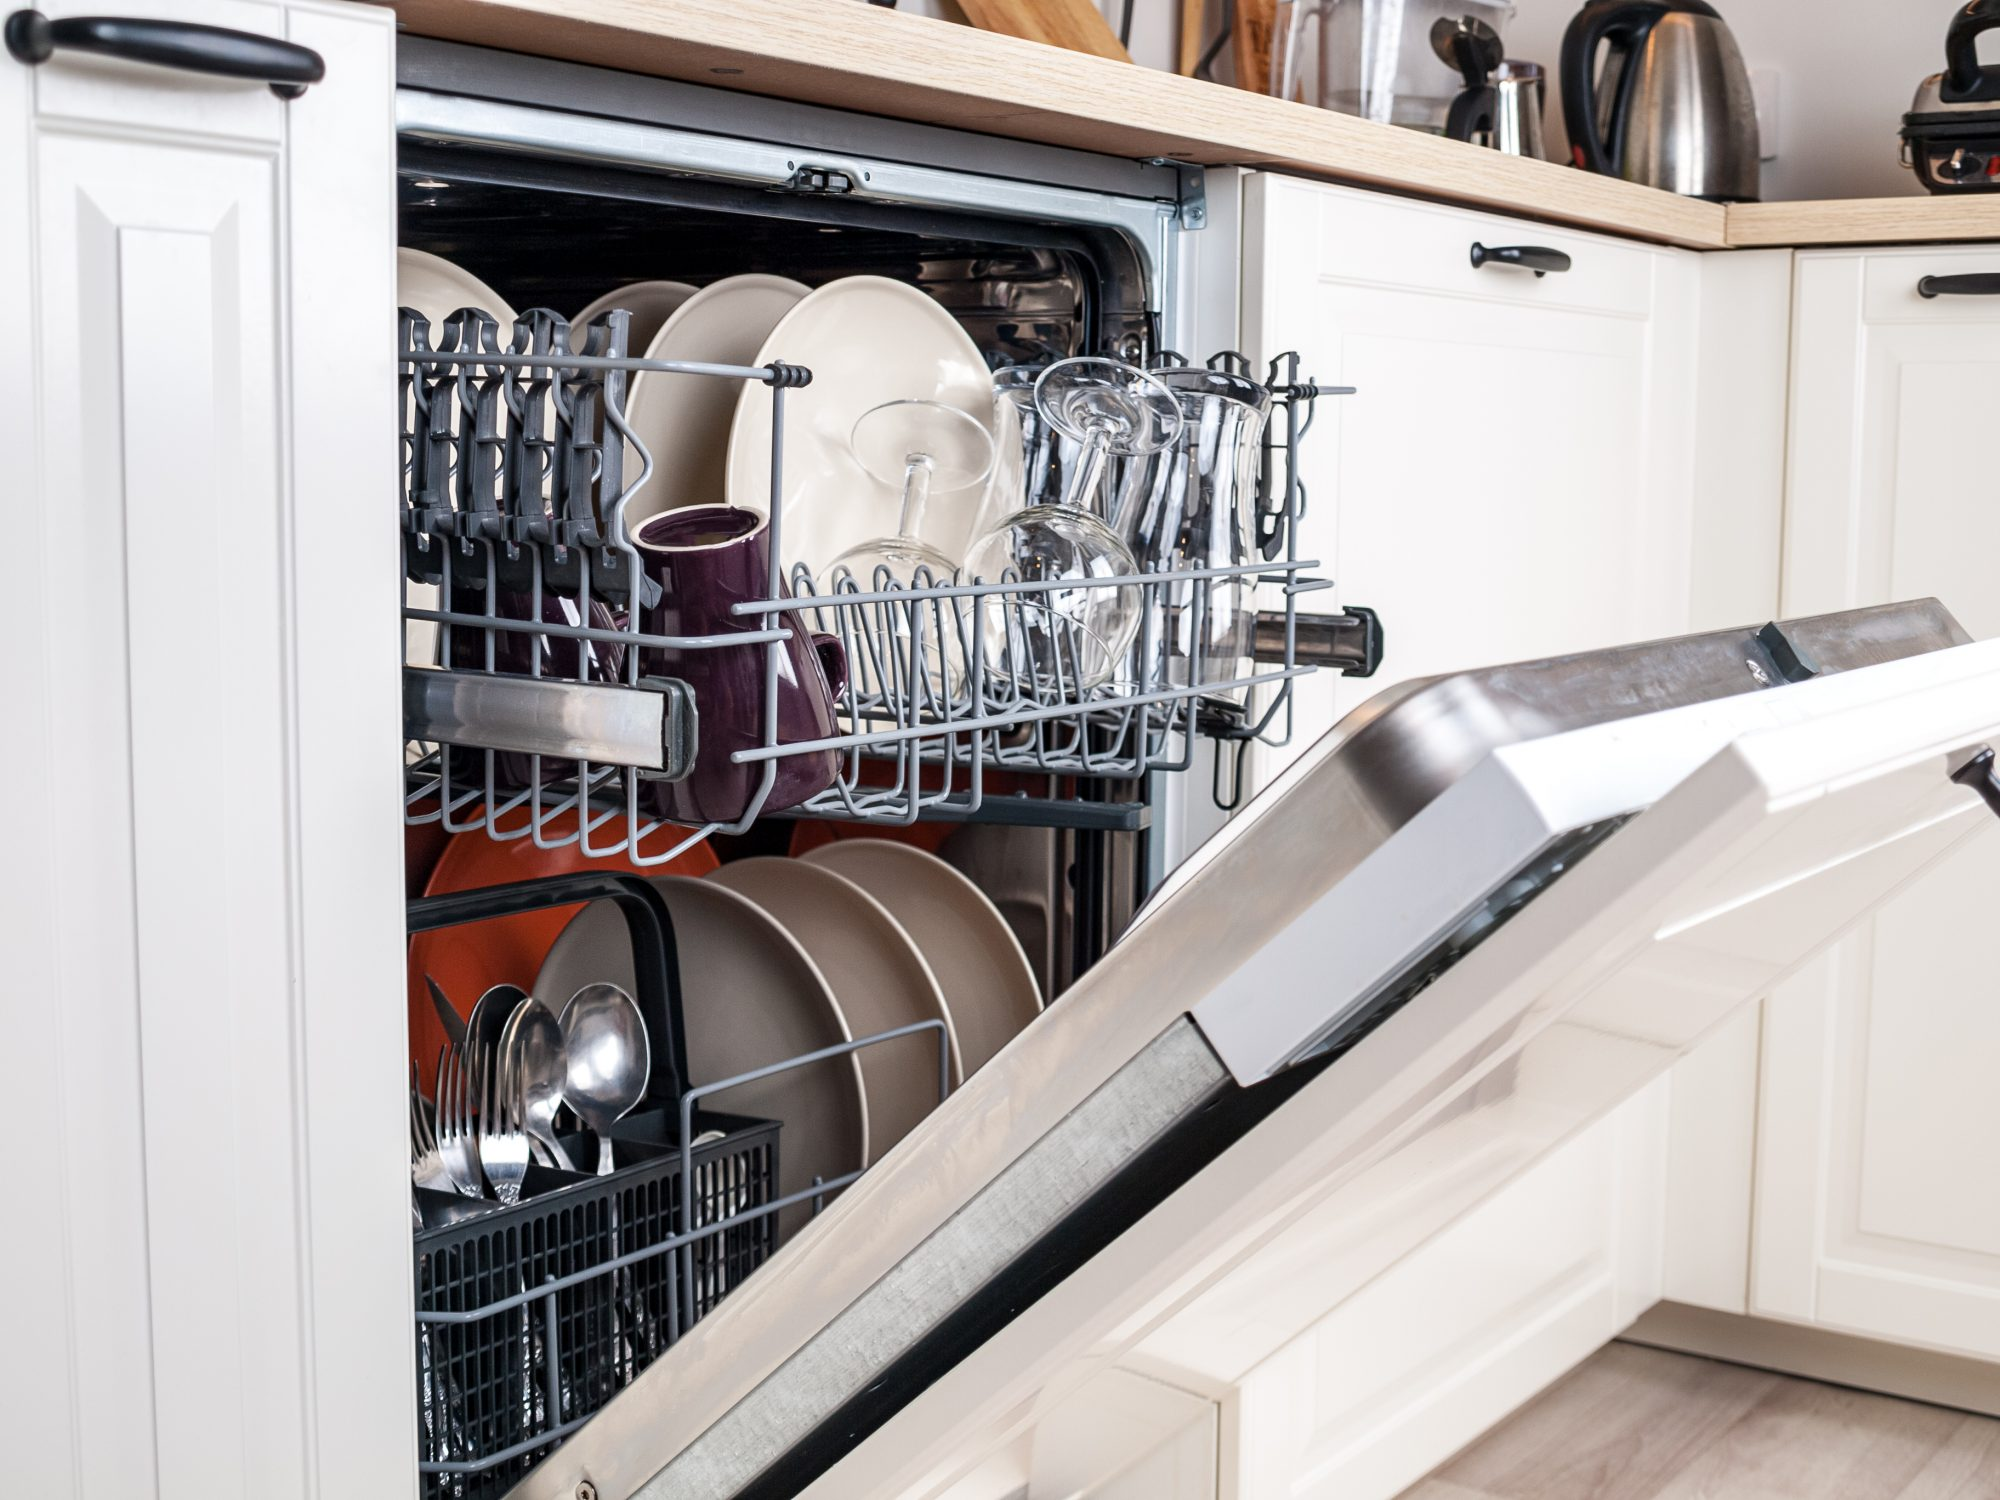 open dishwasher clean dishes